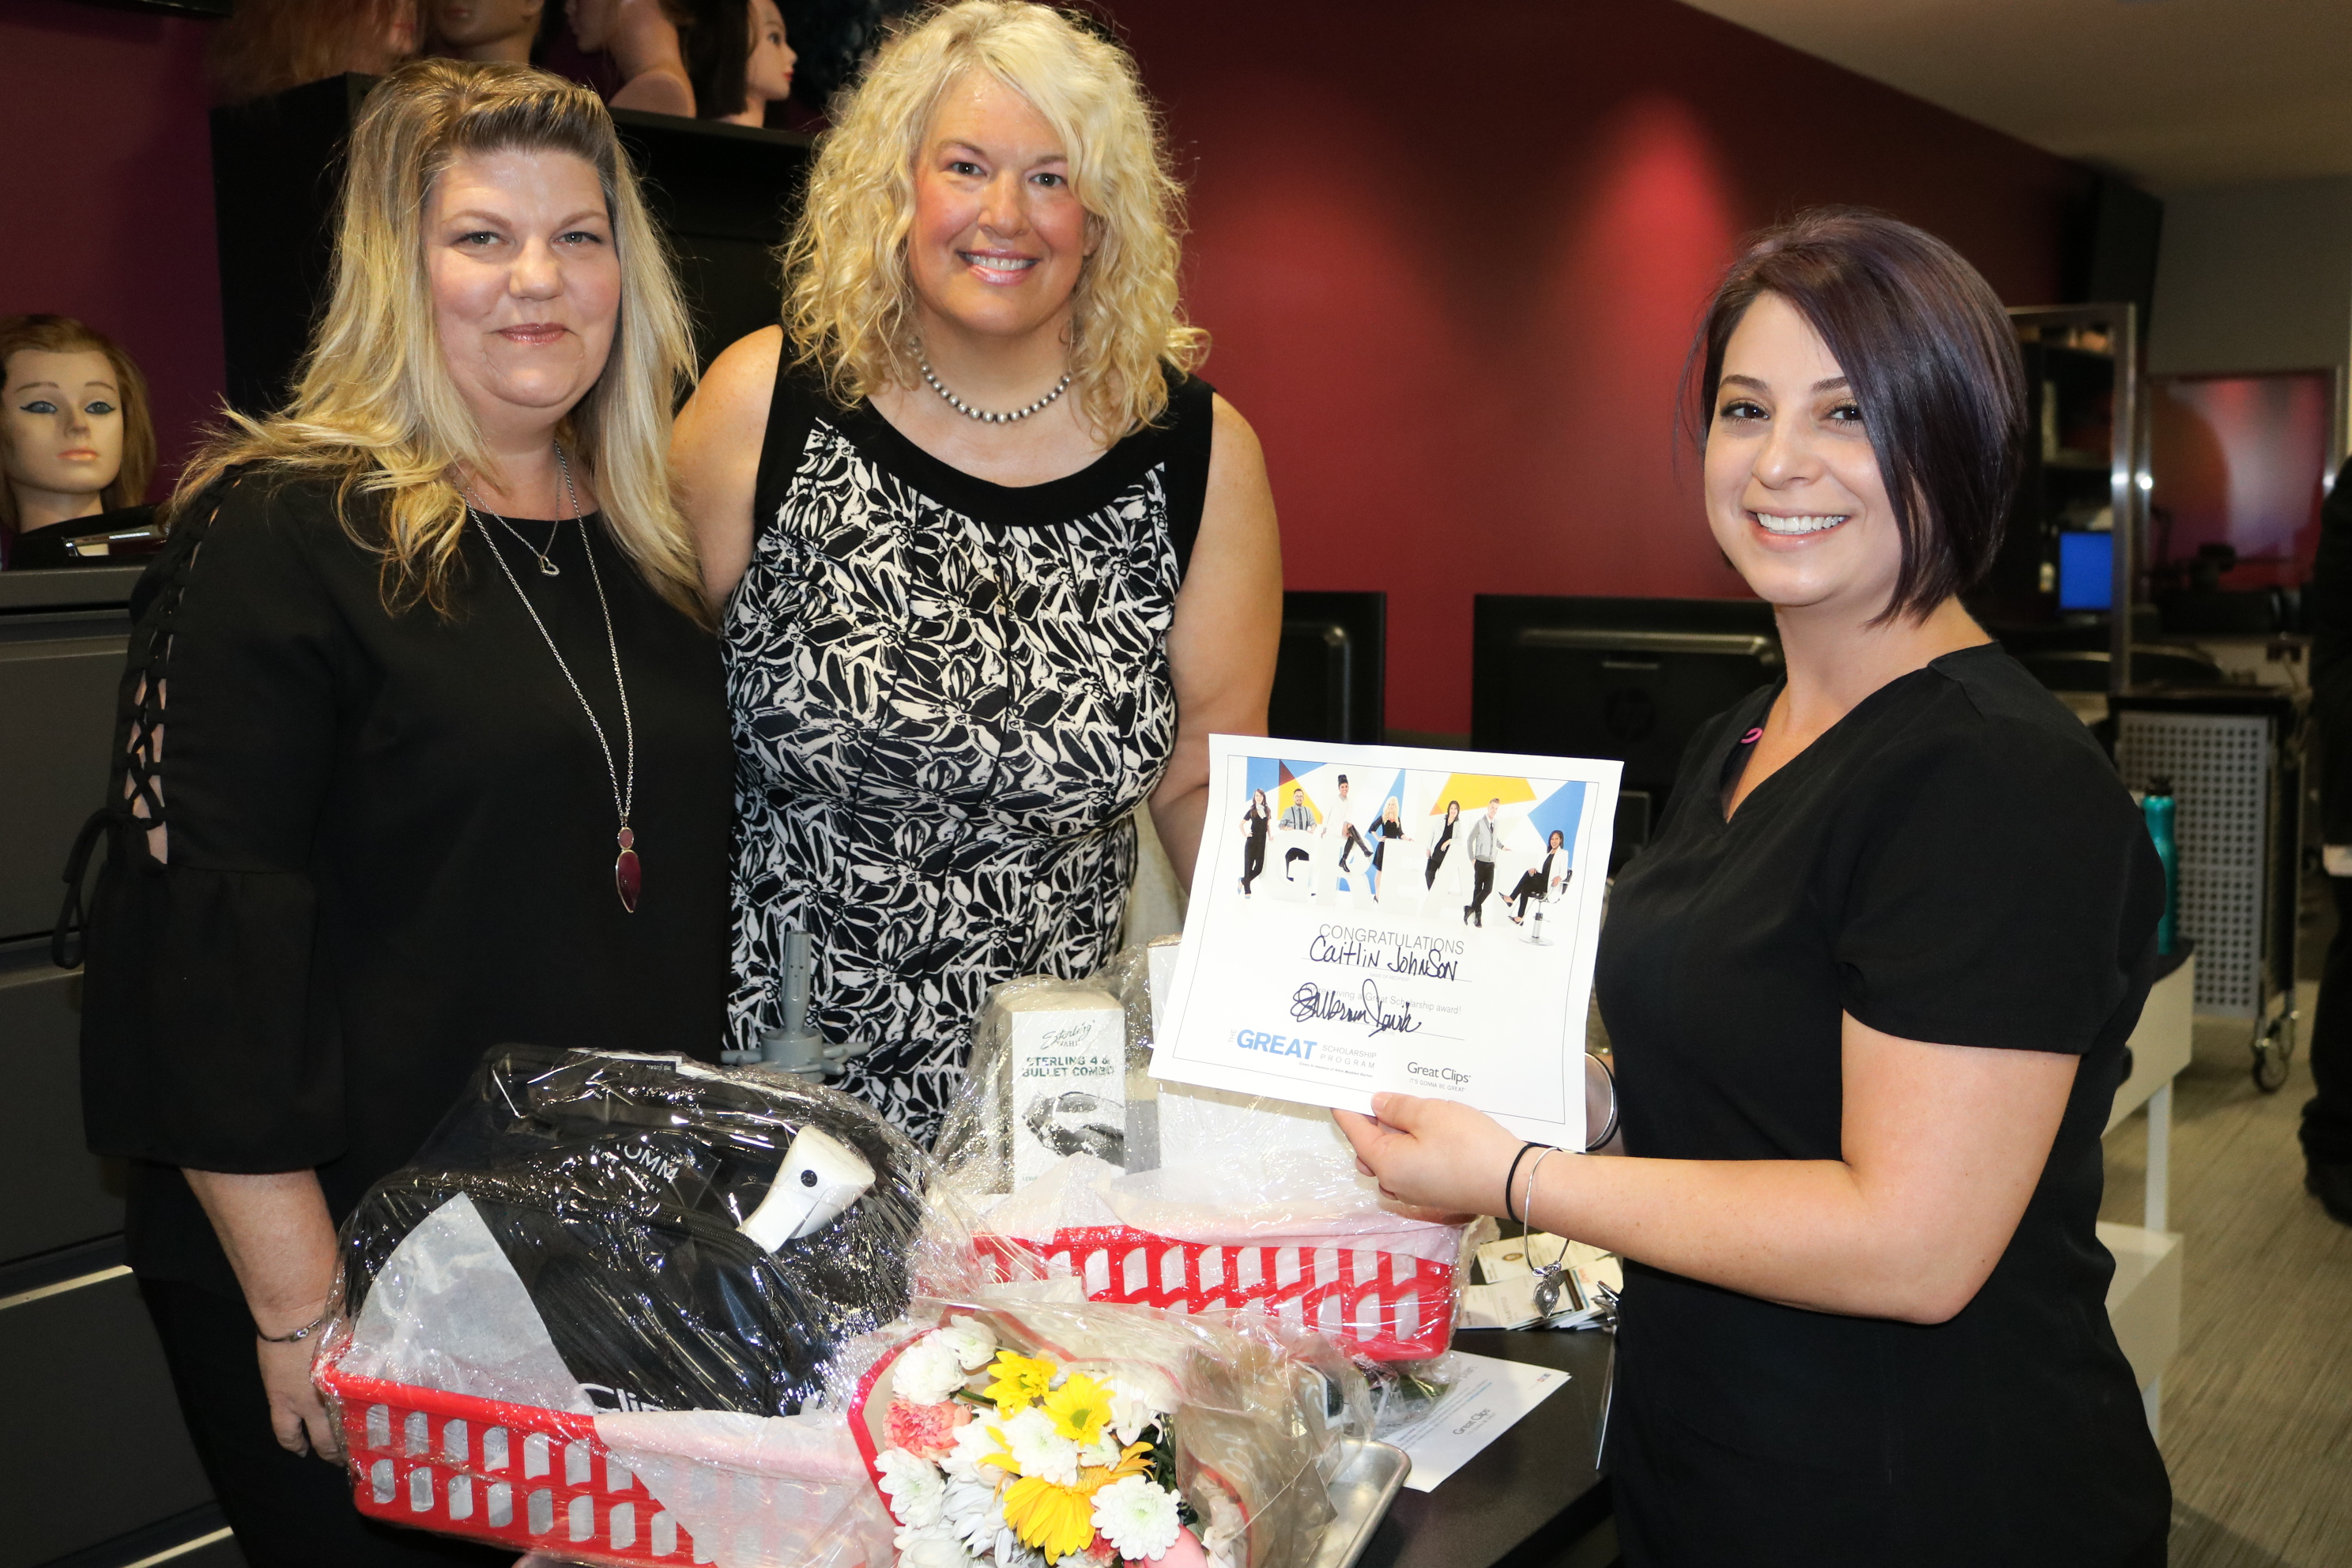 MTC student wins scholarship from Great Clips